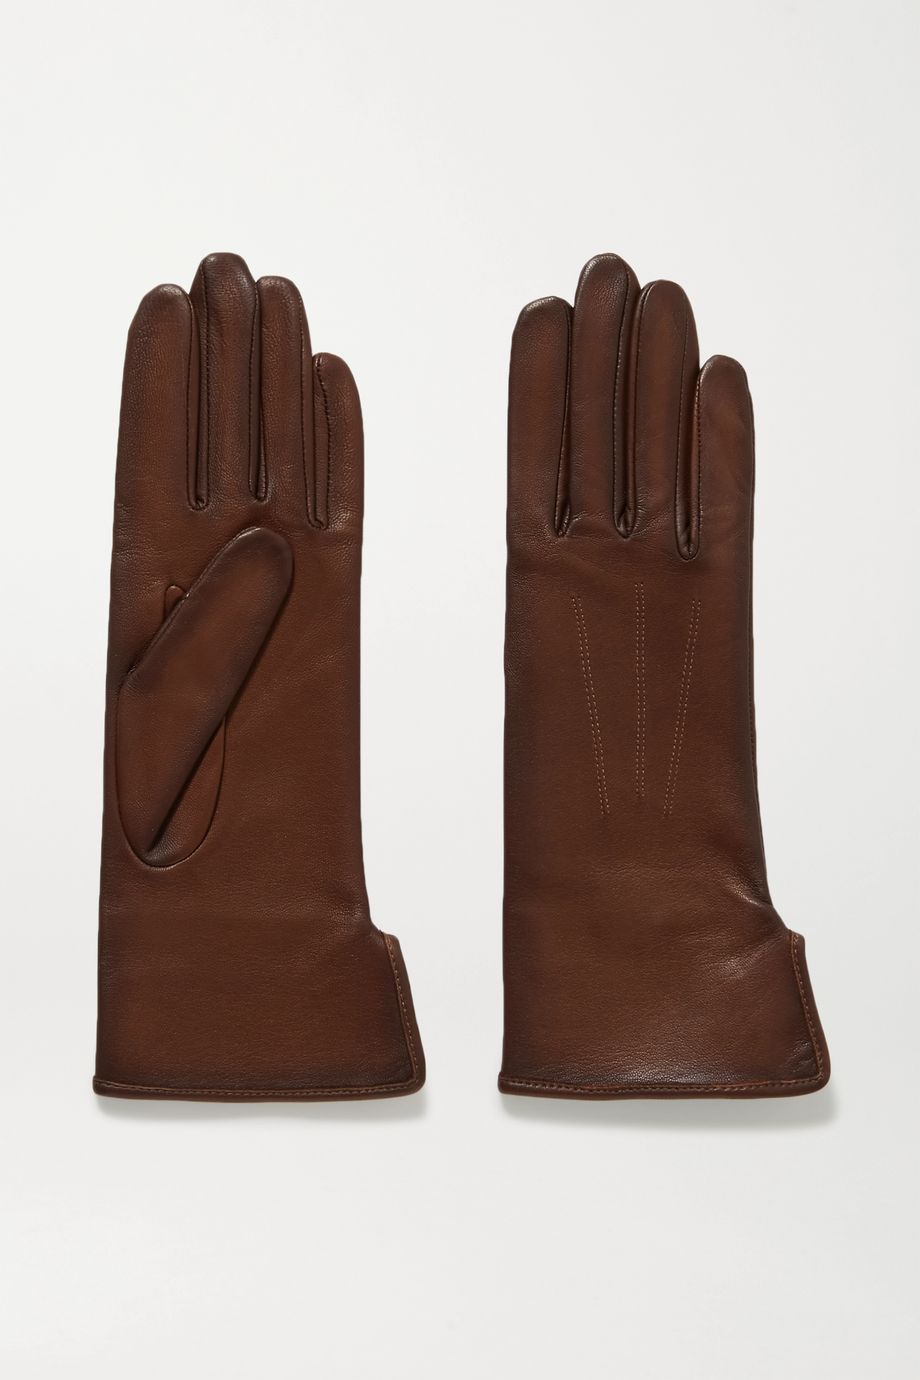 Agnelle Fanny leather gloves